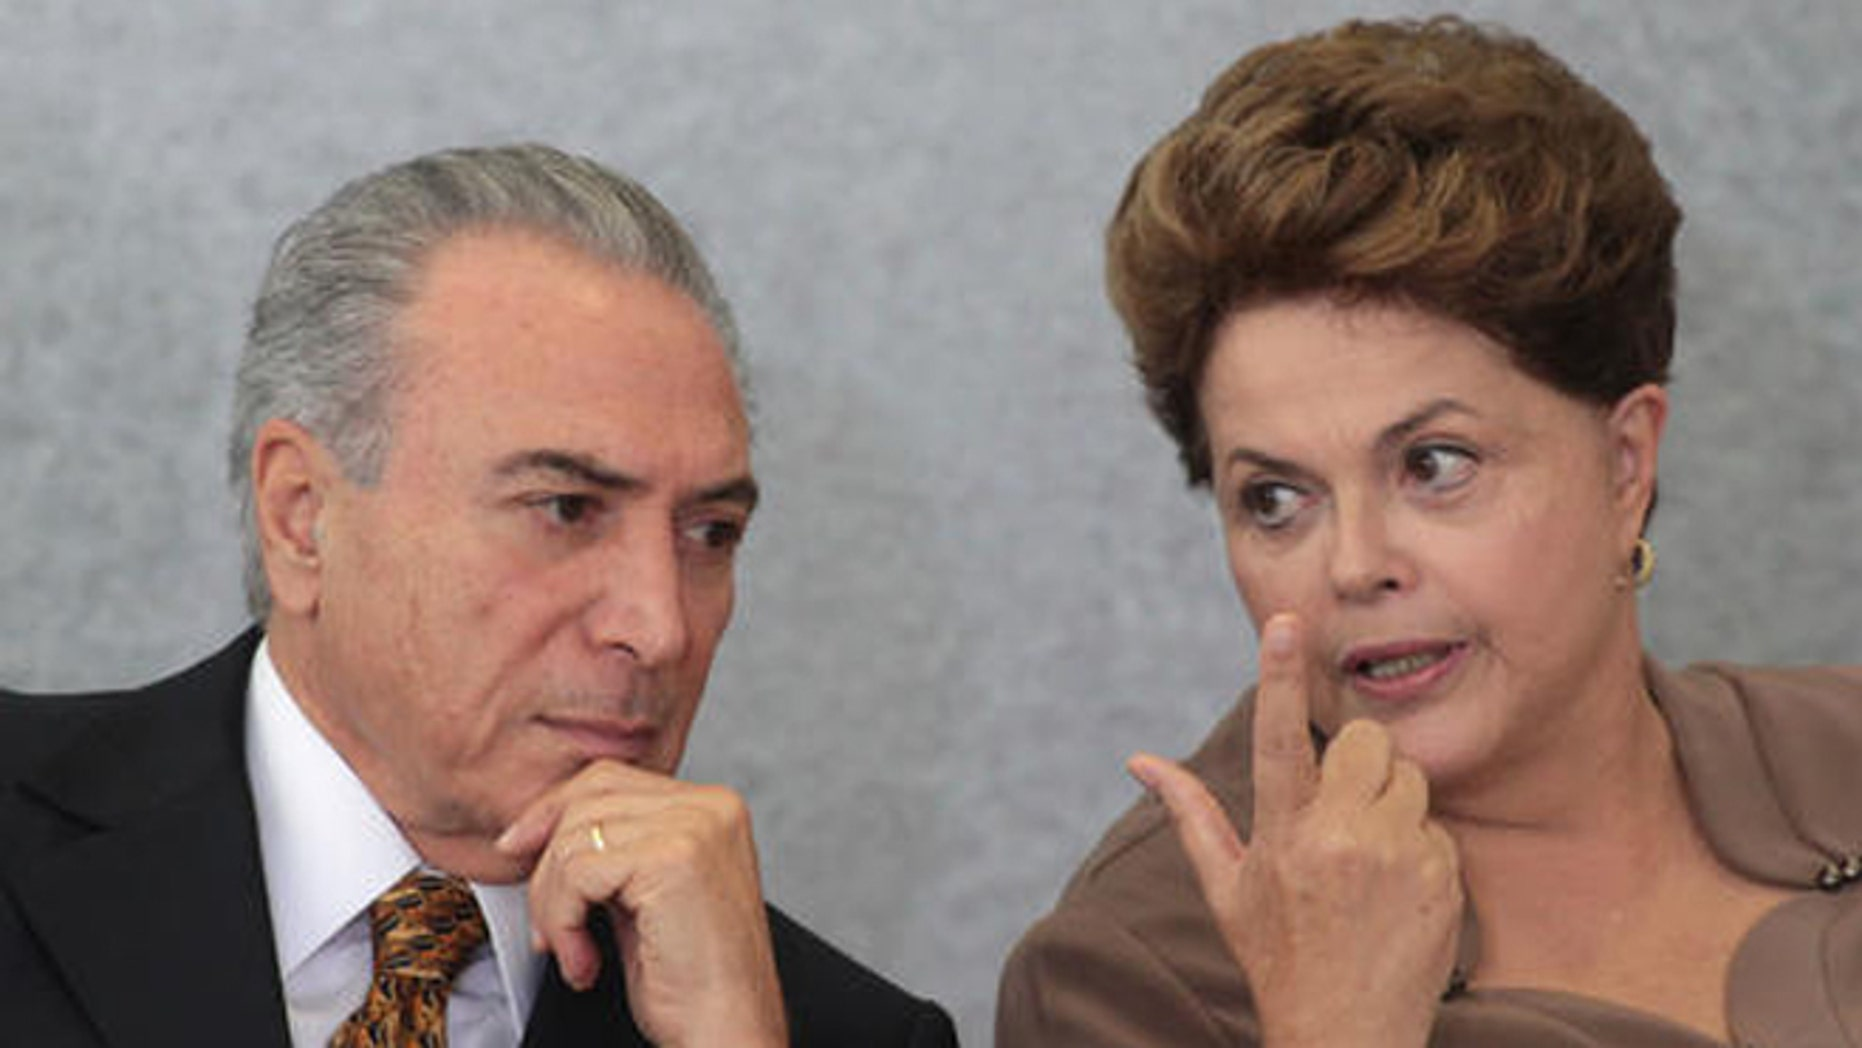 FILE - In this April 24, 2012 file photo, Brazil's President Dilma Rousseff, right, talks with Vice President Michel Temer, during a ceremony at Planalto Palace in Brasilia, Brazil. Three ministers in the government of interim President Temer, who took over when Rousseff was suspended in May, were forced to resign right after taking office because of corruption allegations. And Temer himself has been fingered for bribery by witnesses in the Petrobras investigation who have reached plea deals with prosecutors, though so far he has not been charged. (AP Photo/Eraldo Peres)